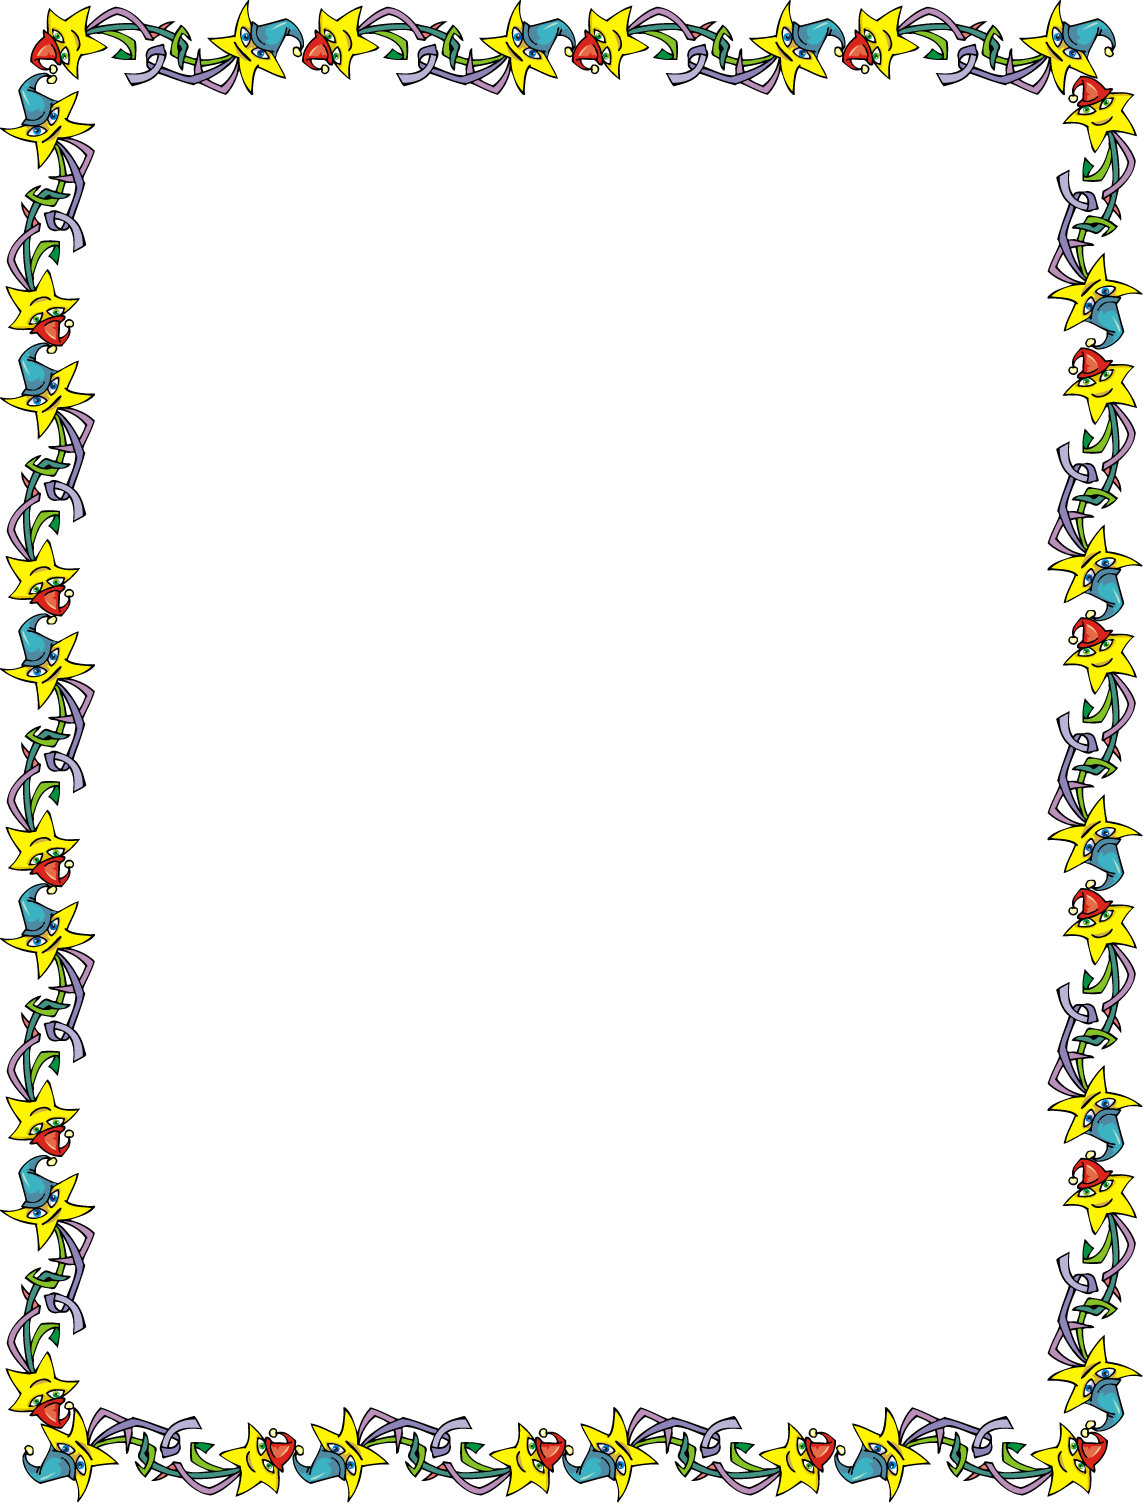 Tooth clipart frame, Tooth frame Transparent FREE for.